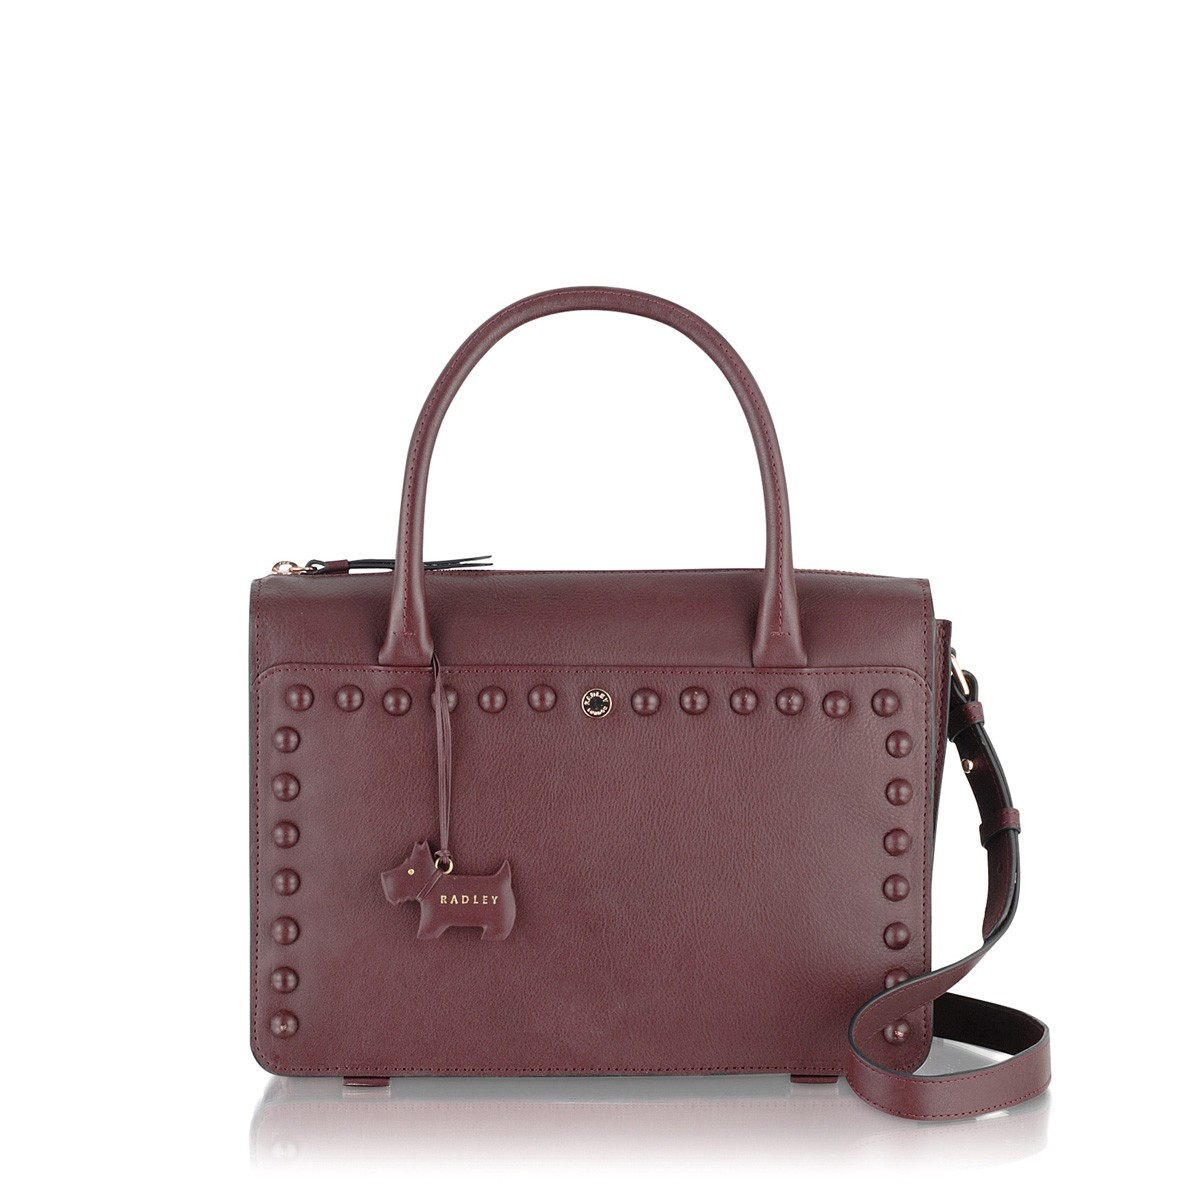 radley bag loading zoom GPQSNRC